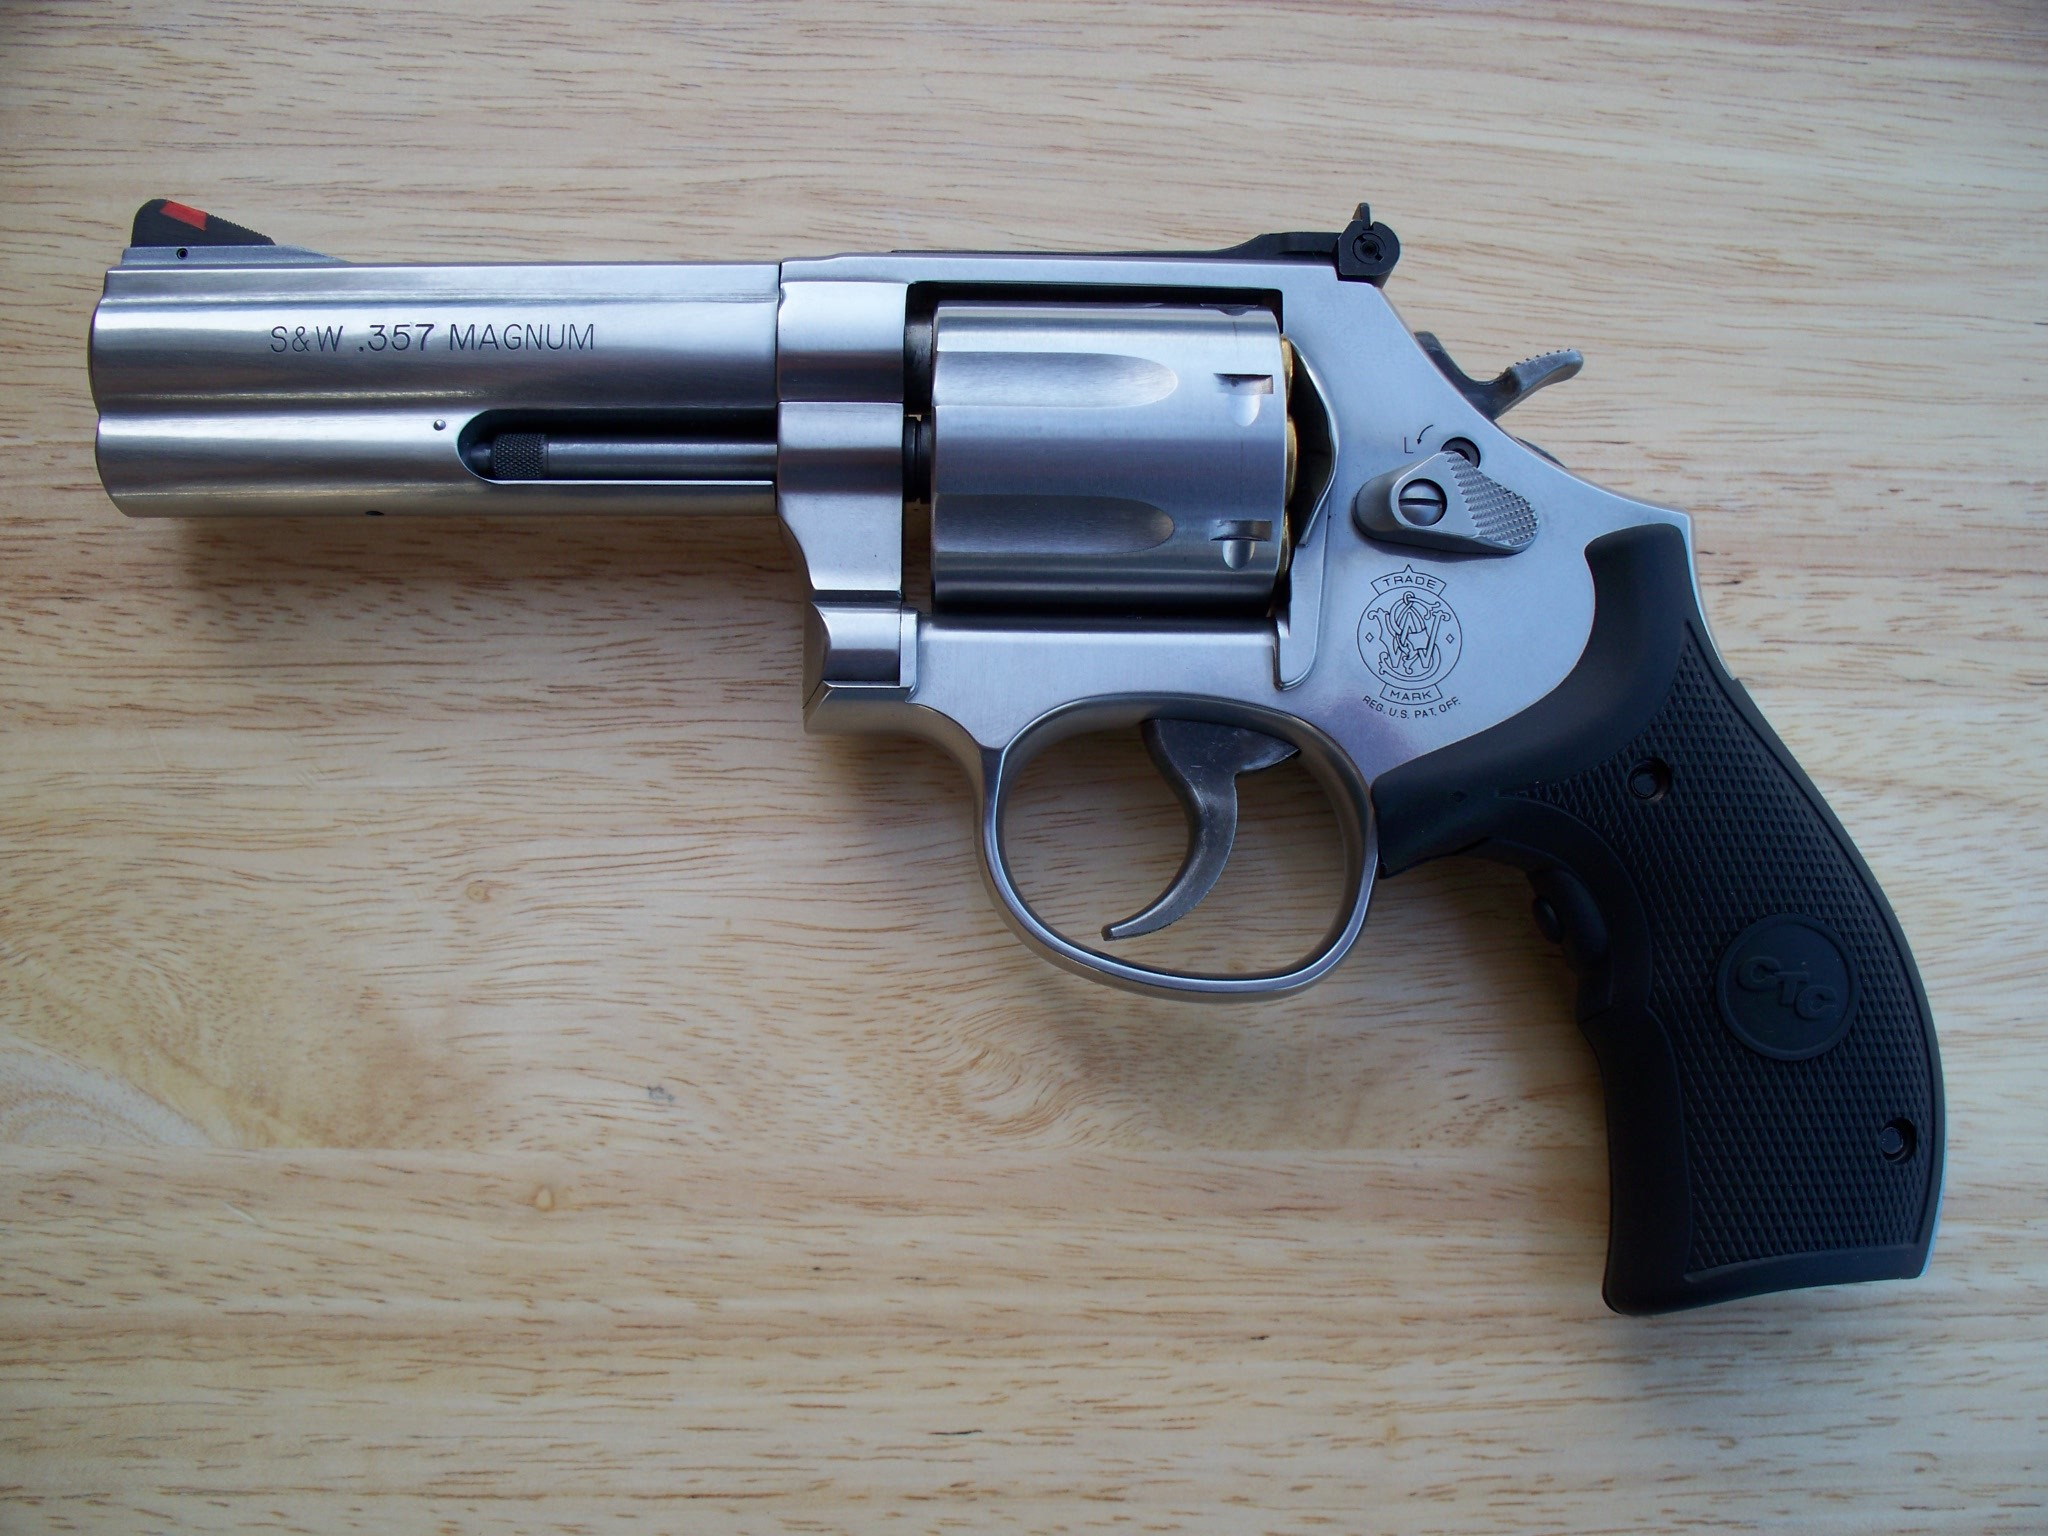 2048x1536 http://upload.wikimedia.org/wikipedia/commons/f/f9/Smith_%26_Wesson_.357_Model_686_Plus.jpg  | REVOLVER | Pinterest | Smith wesson and Revolvers